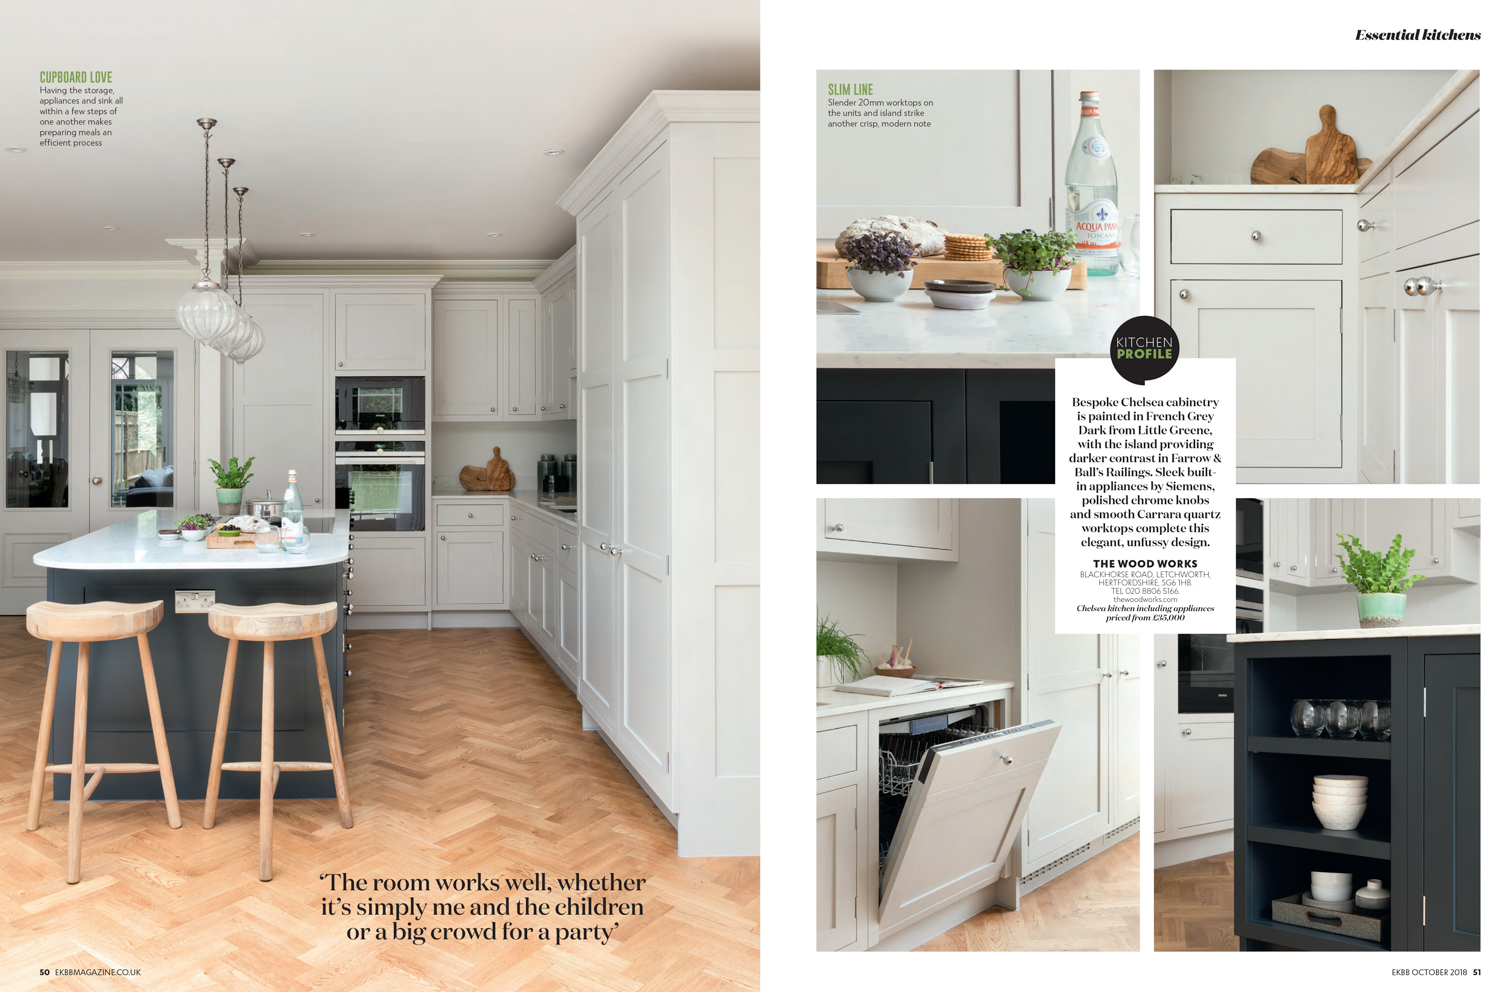 Essential Kitchen Bathroom Bedroom Magazine October 2018 | Paul Craig Interior Photographer